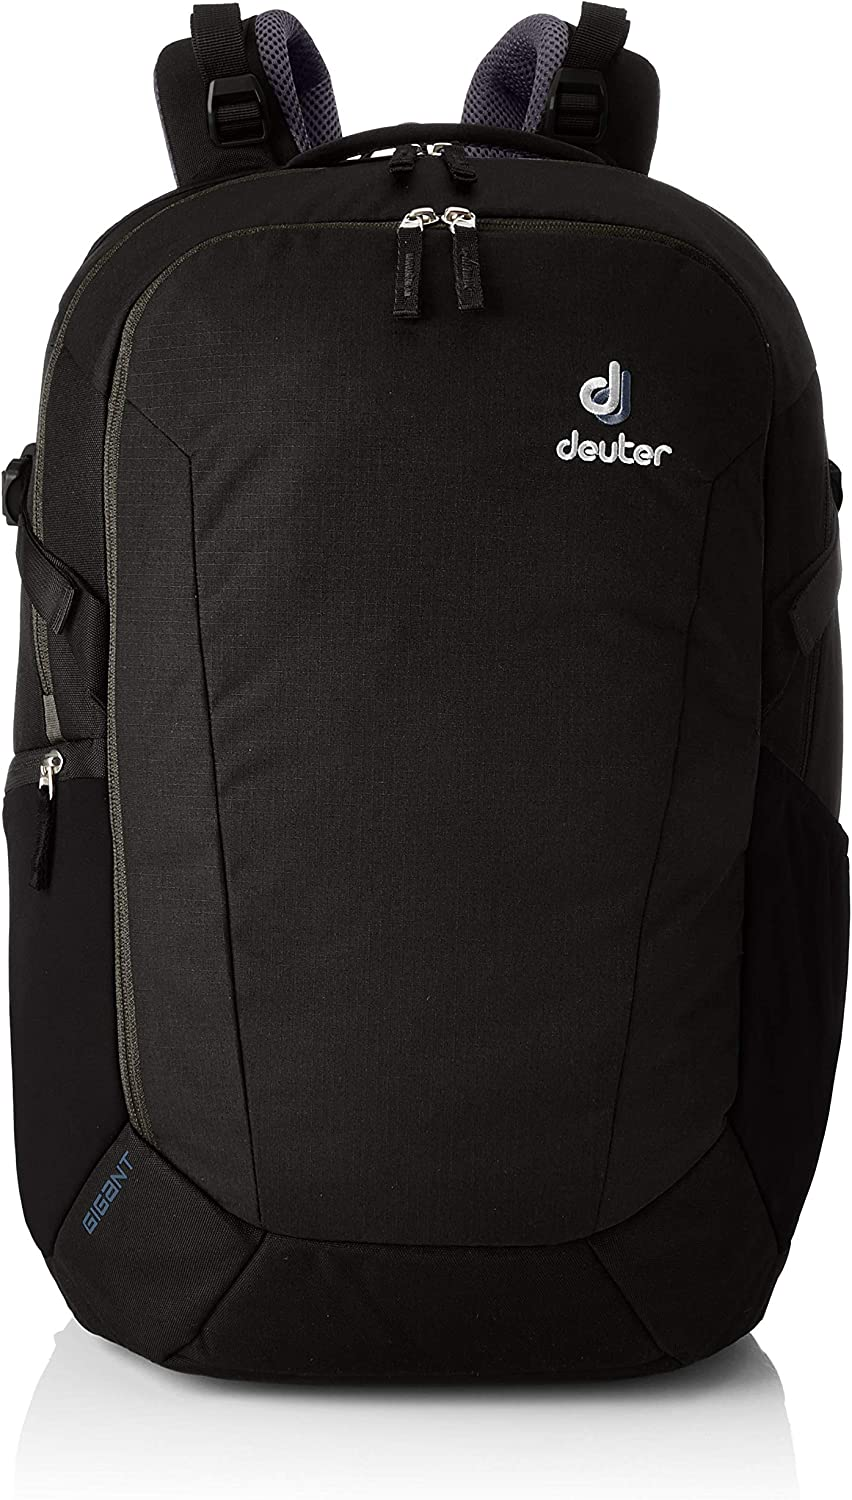 Deuter Gigant Backpack